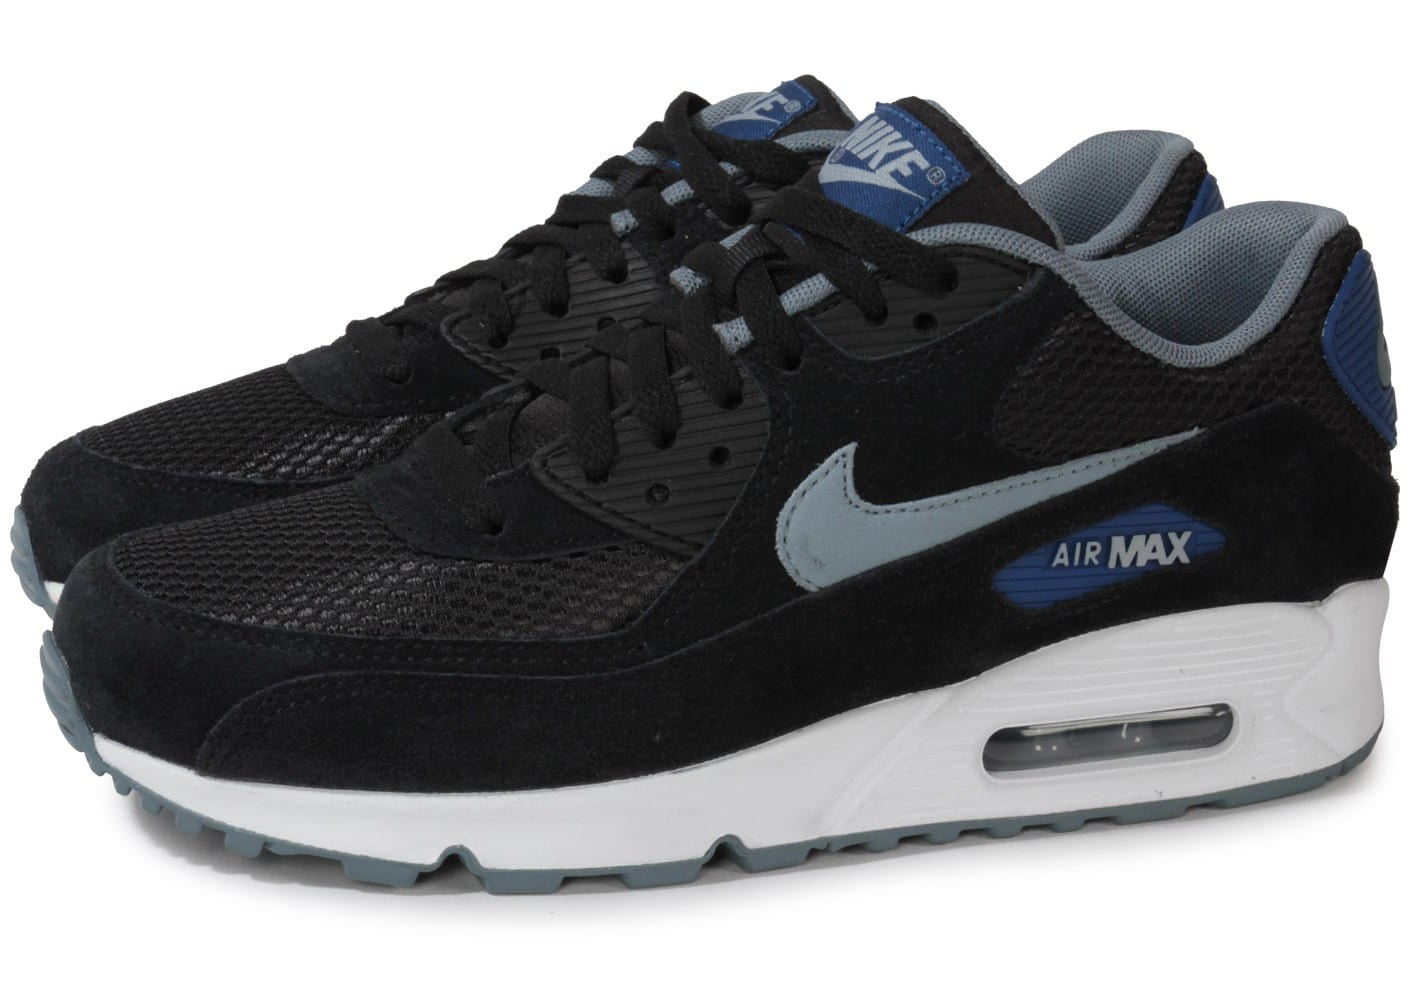 nike air max 90 essential noire chaussures homme chausport. Black Bedroom Furniture Sets. Home Design Ideas